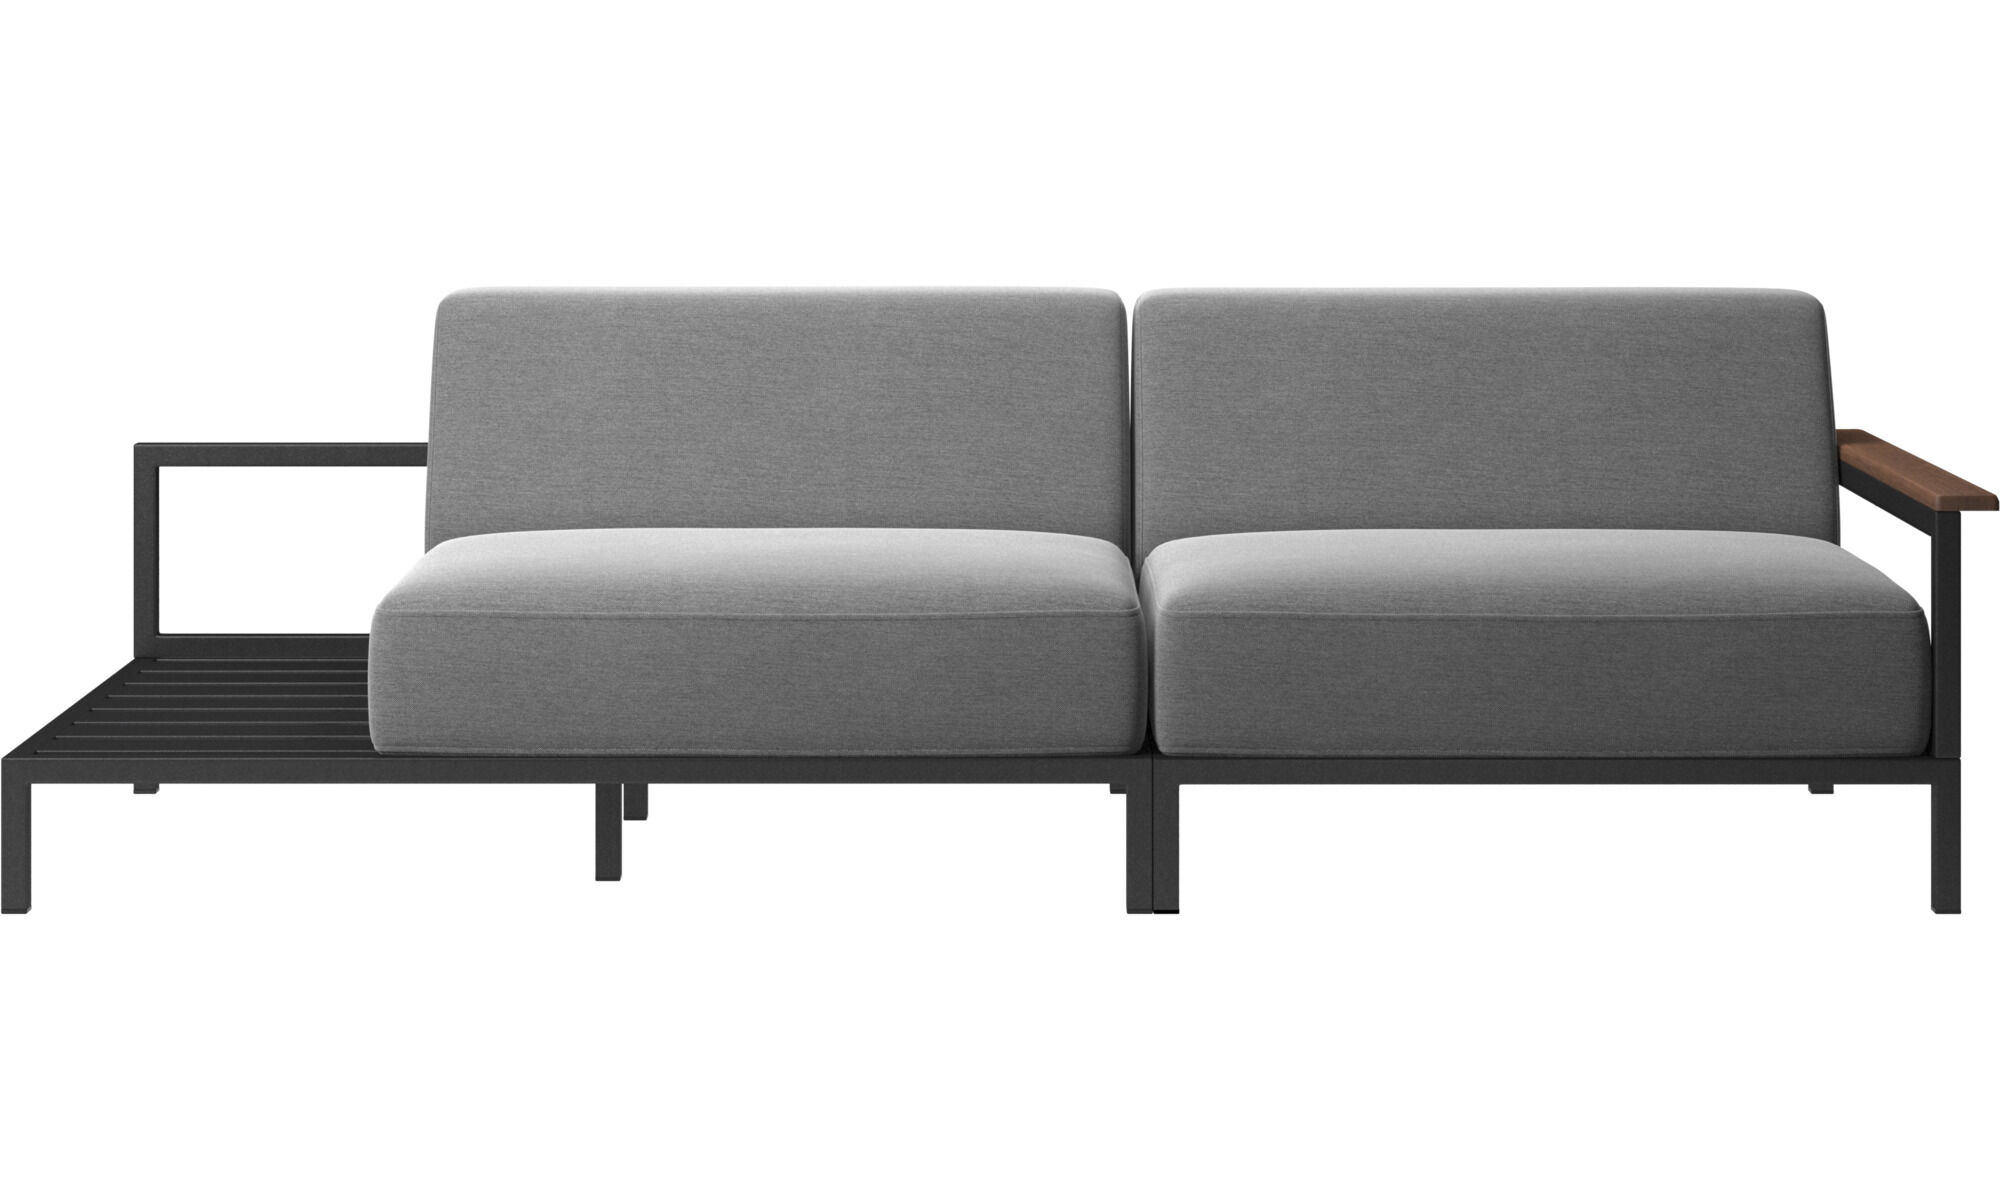 Rome outdoor sofa with x2 cushions